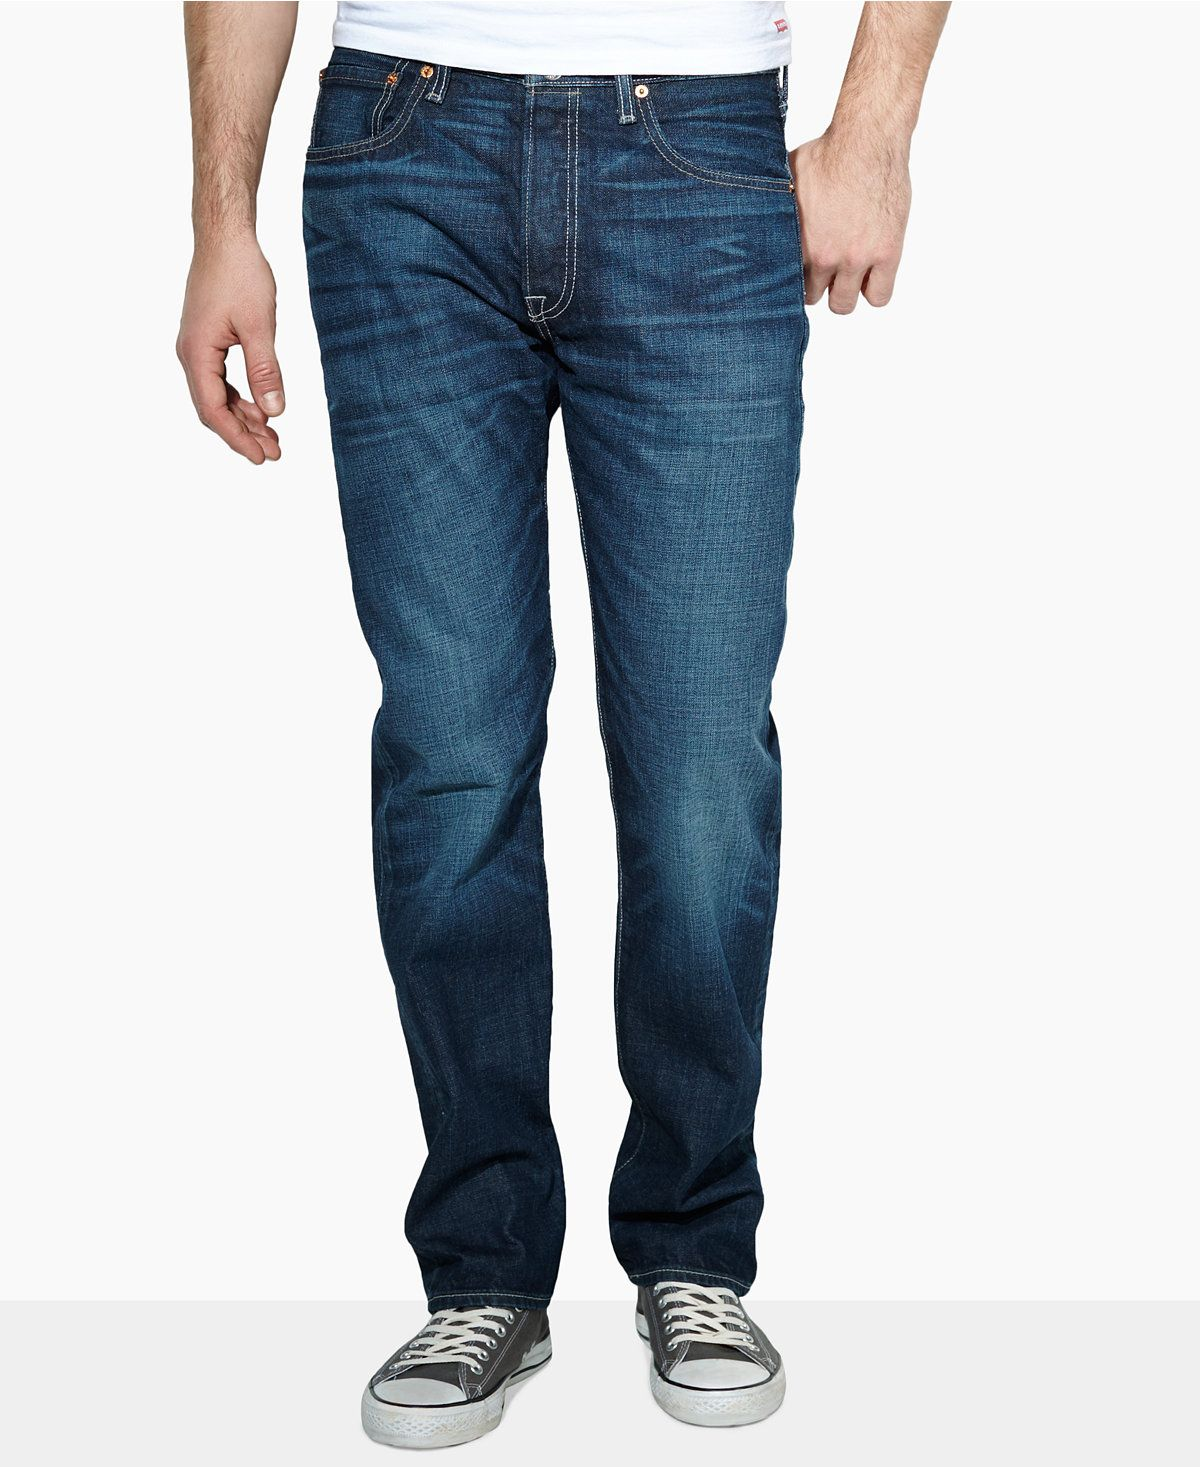 fd0de9c4 Men's 501 Original Fit Jeans | BURAZ | Jeans fit, Jeans, the Originals